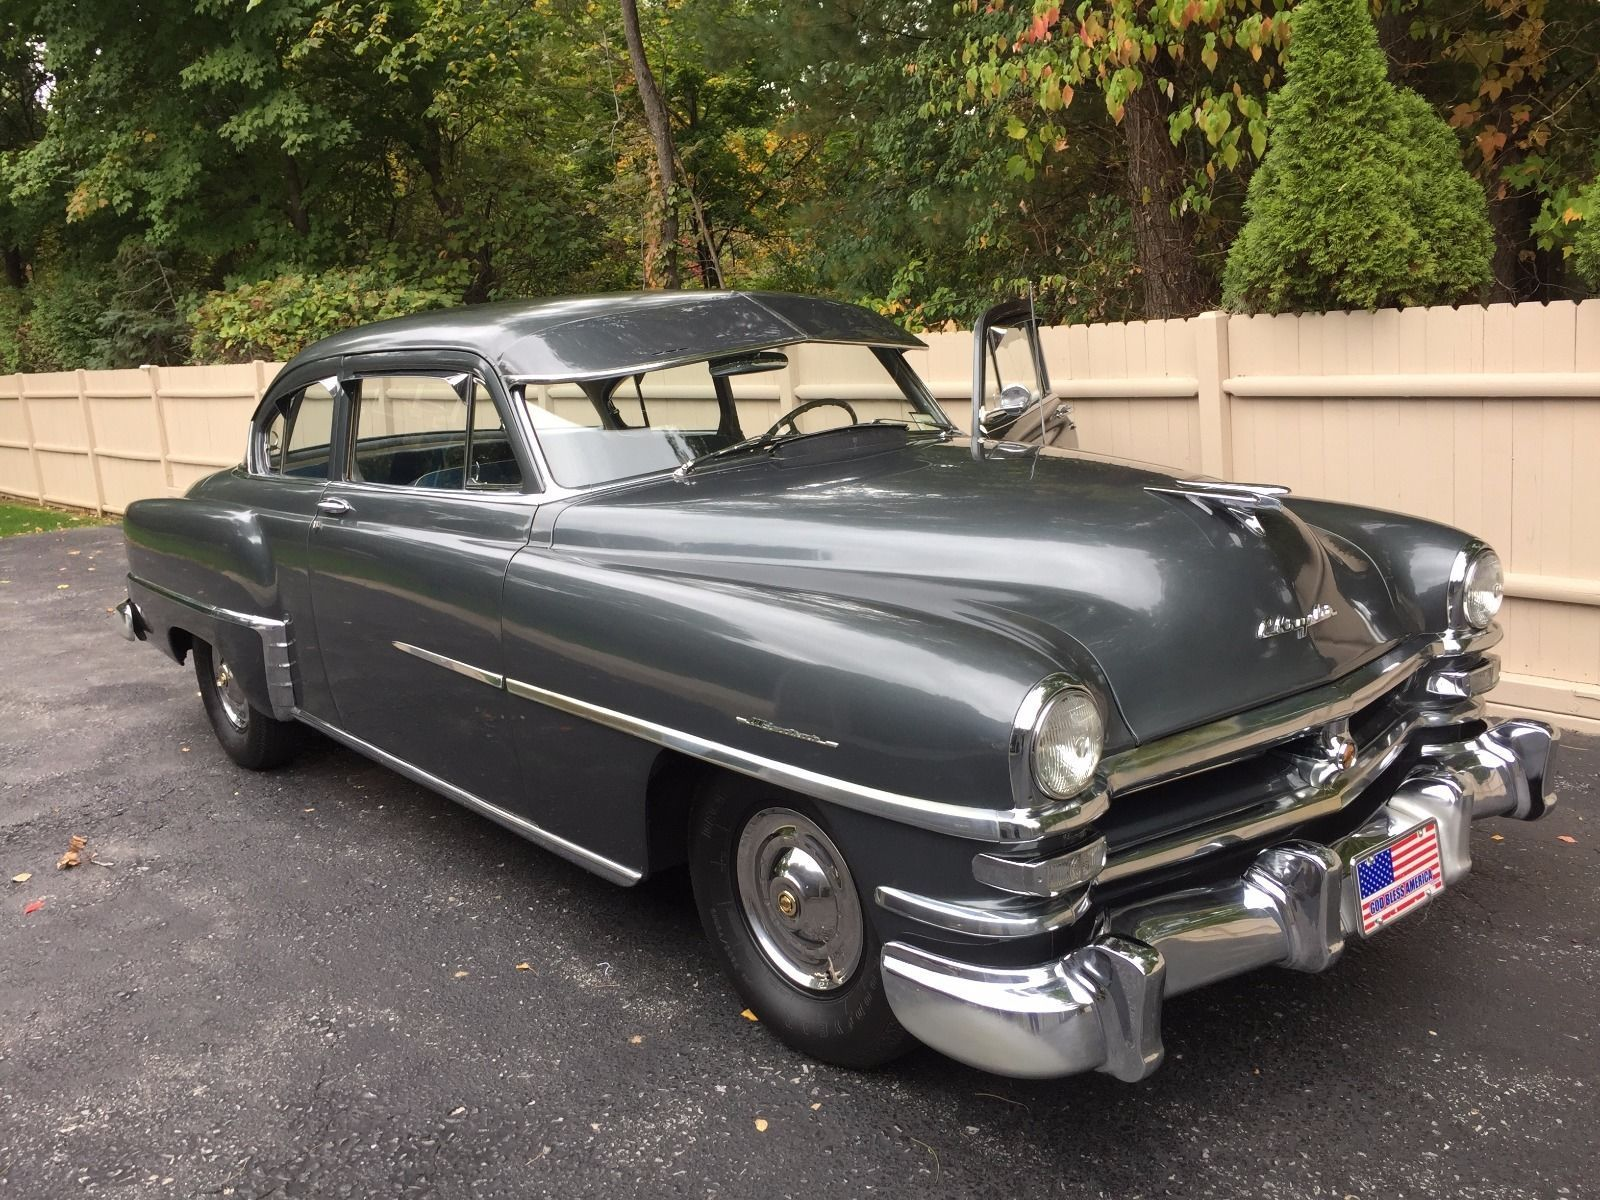 1953 Chrysler Other | Motor car and Cars